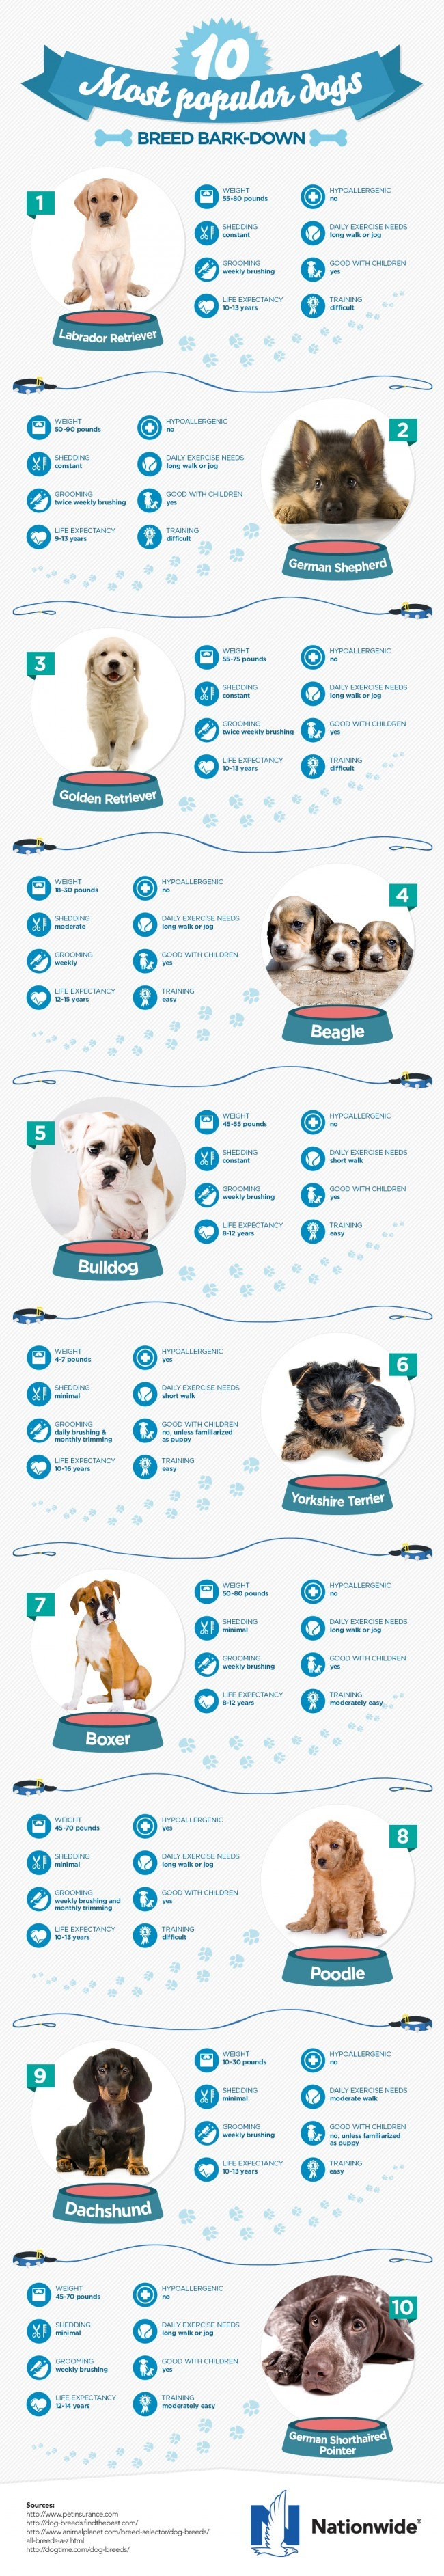 infographic for some very useful info on the most popular dog breeds